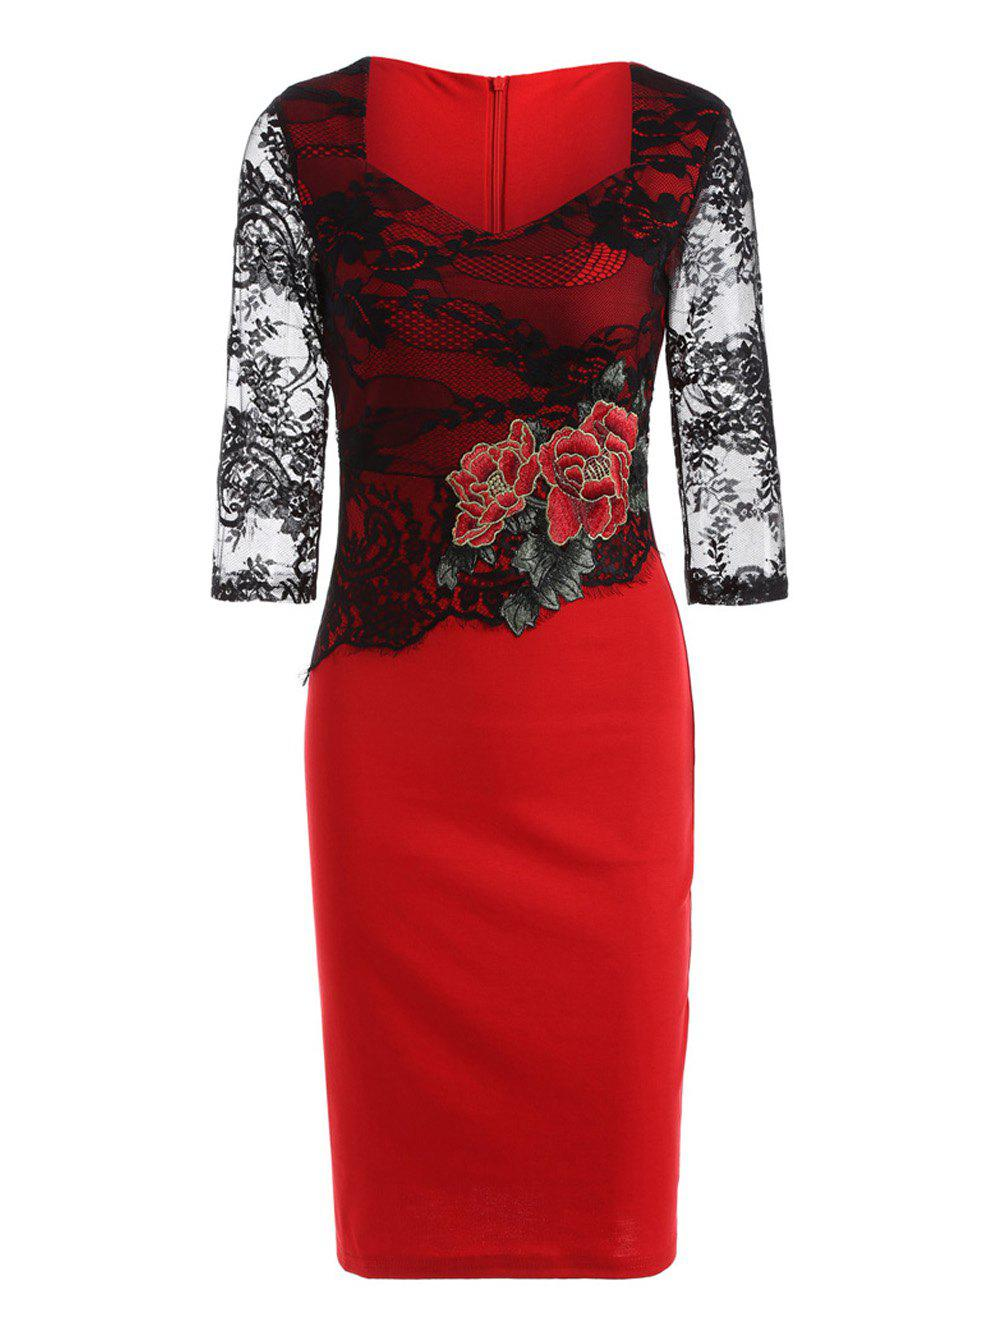 Fashion Embroidered Floral Lace See Through Pencil Dress